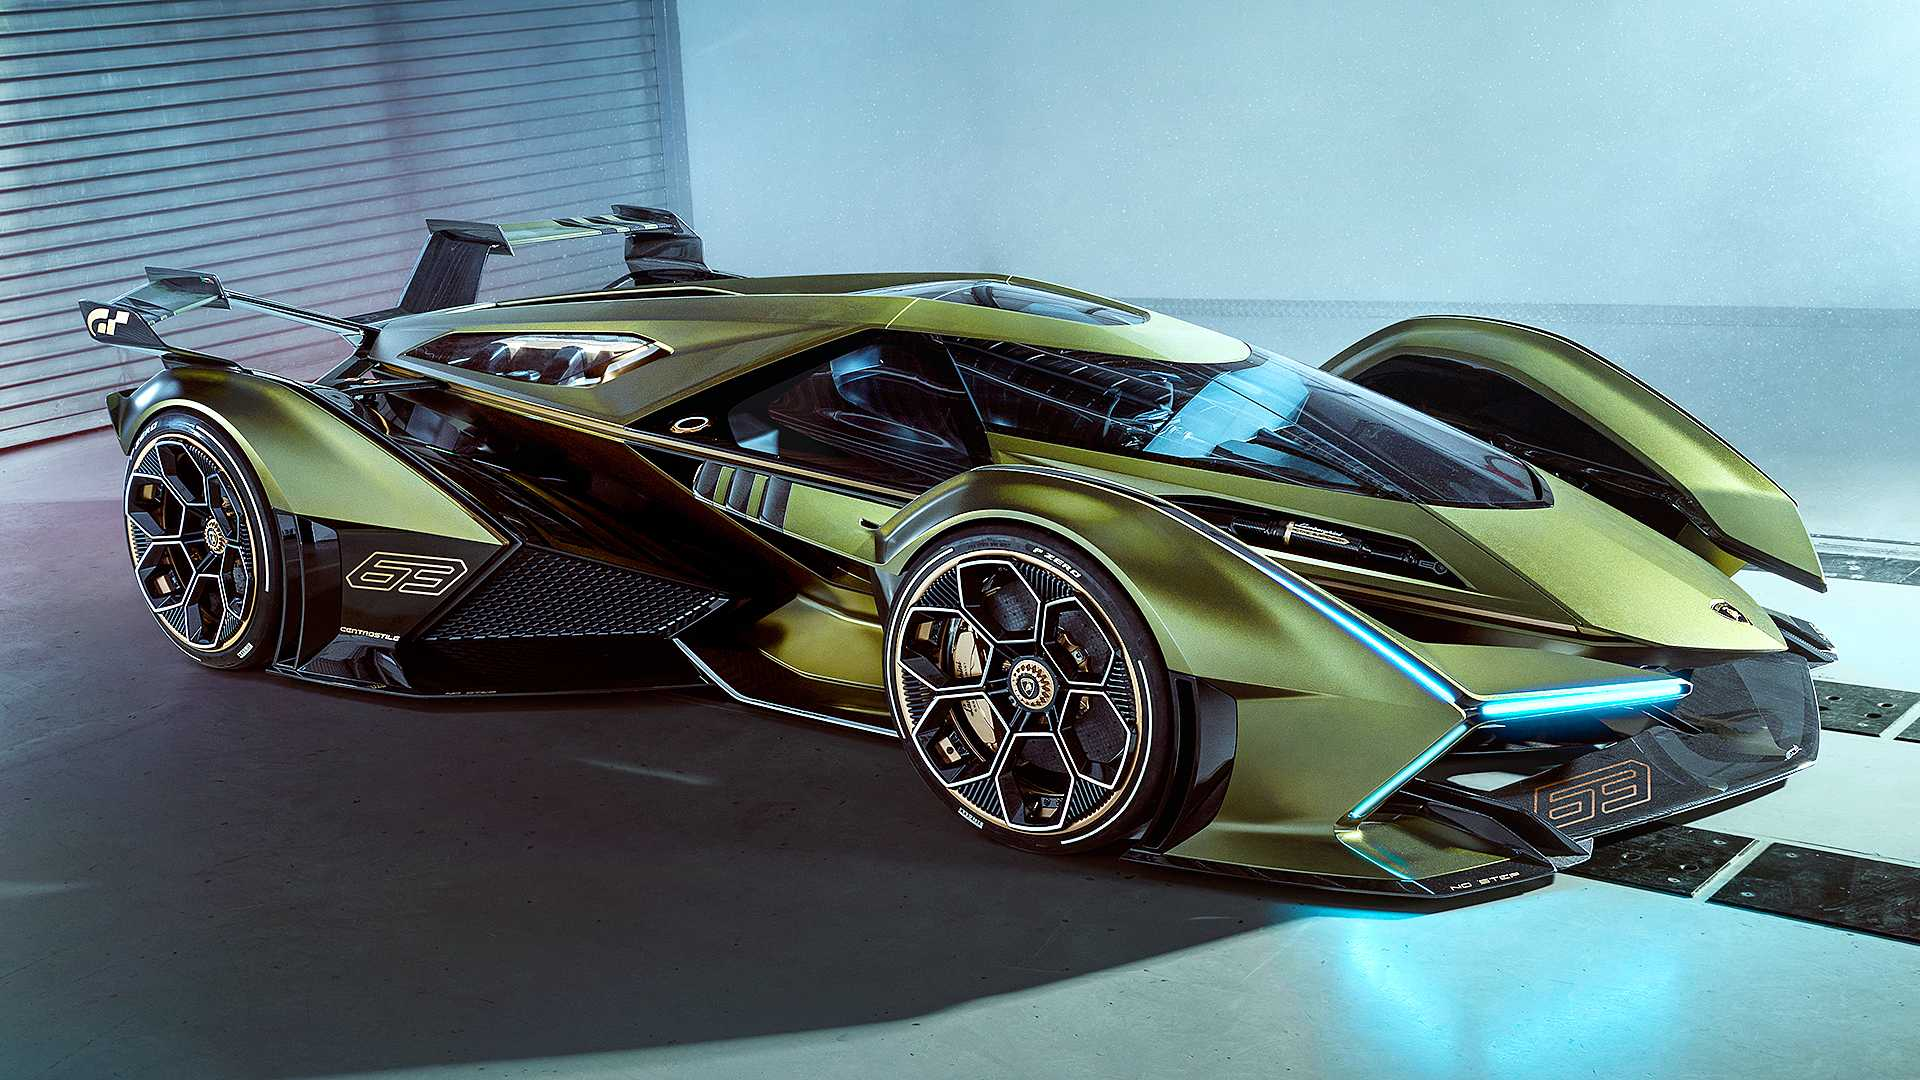 Lambo V12 Vision Gran Turismo revealed as 'the best virtual auto ever'